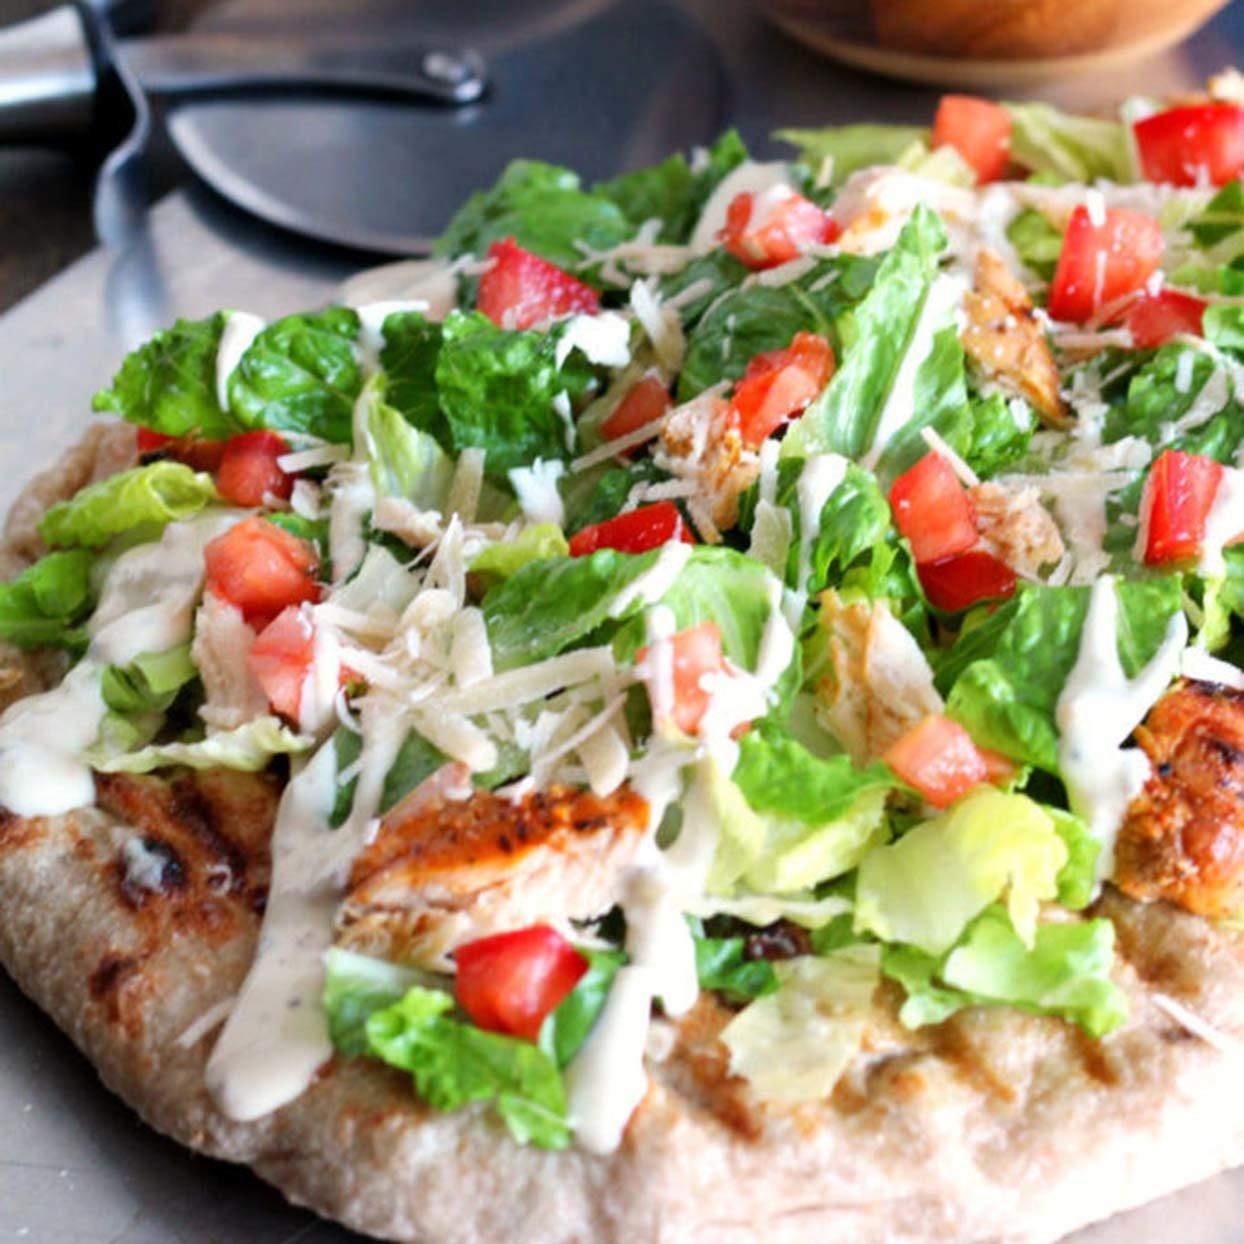 Salad Pizza Recipes Are the Latest (and Prettiest) Healthy